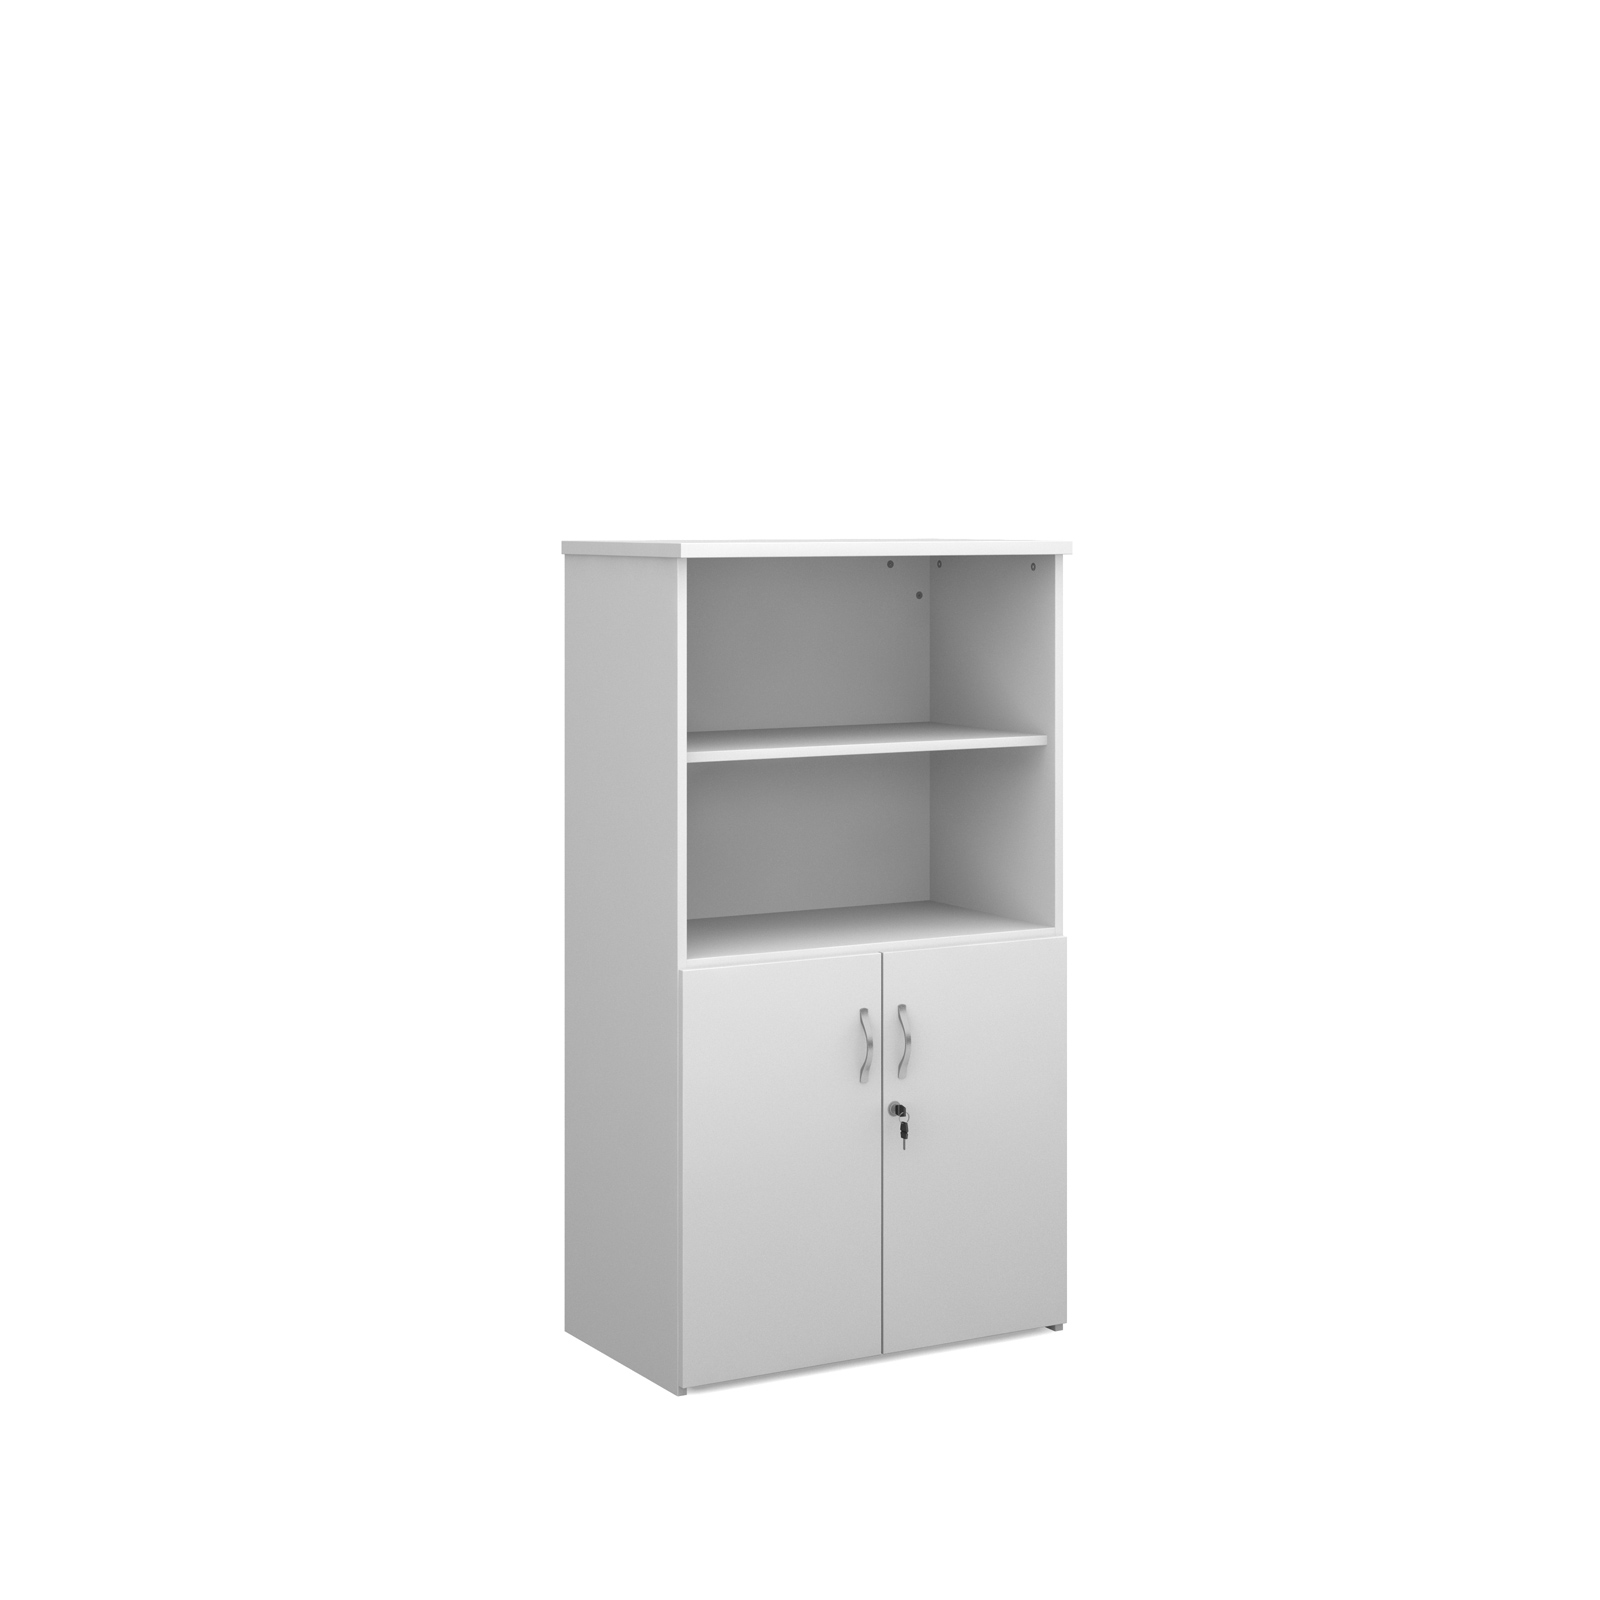 1440mm high combination unit with open top and wood doors in white